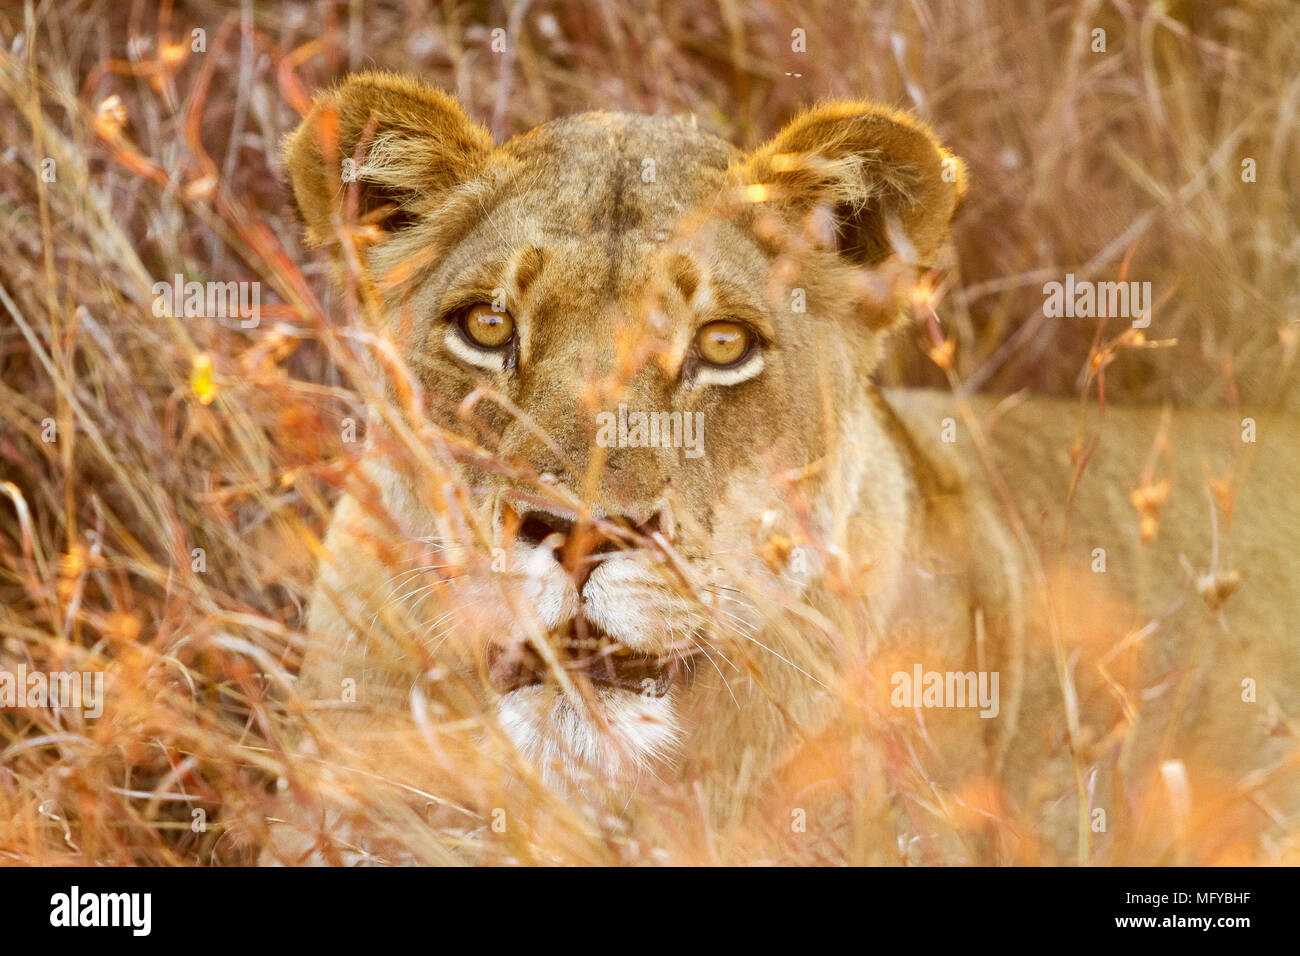 Photographed on an evening game drive, from an open top safari vehicle. She was part of a small pride of lions that were resting in the grass. - Stock Image